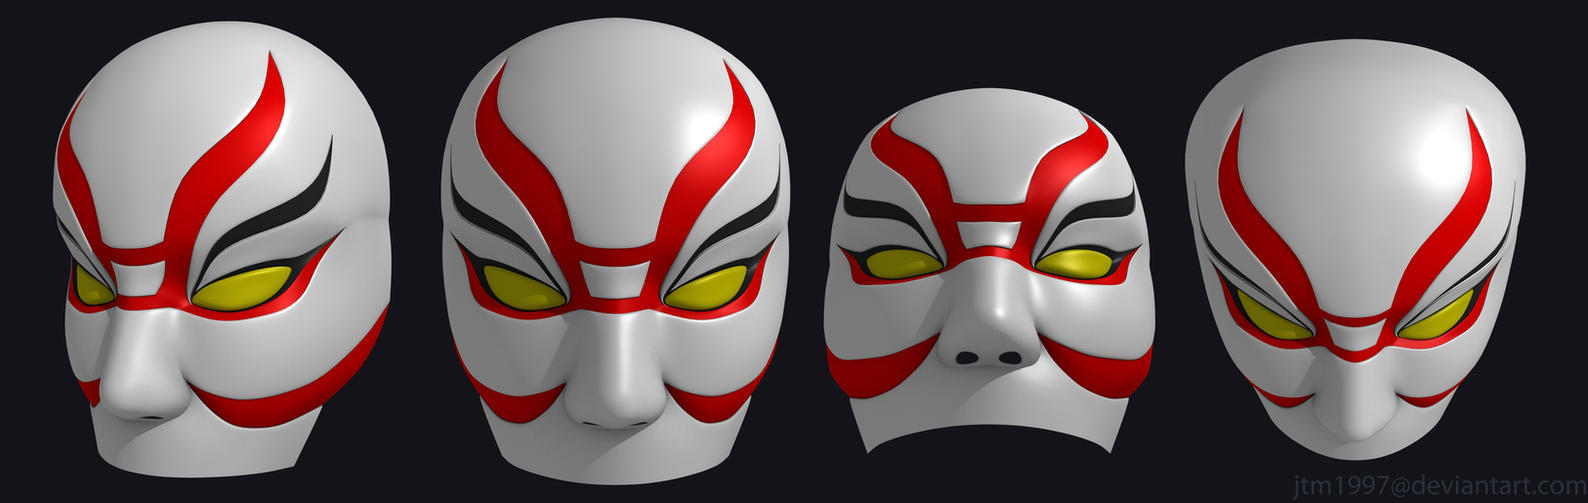 Big hero 6 villain mask by jtm1997 on deviantart for Kabuki mask template